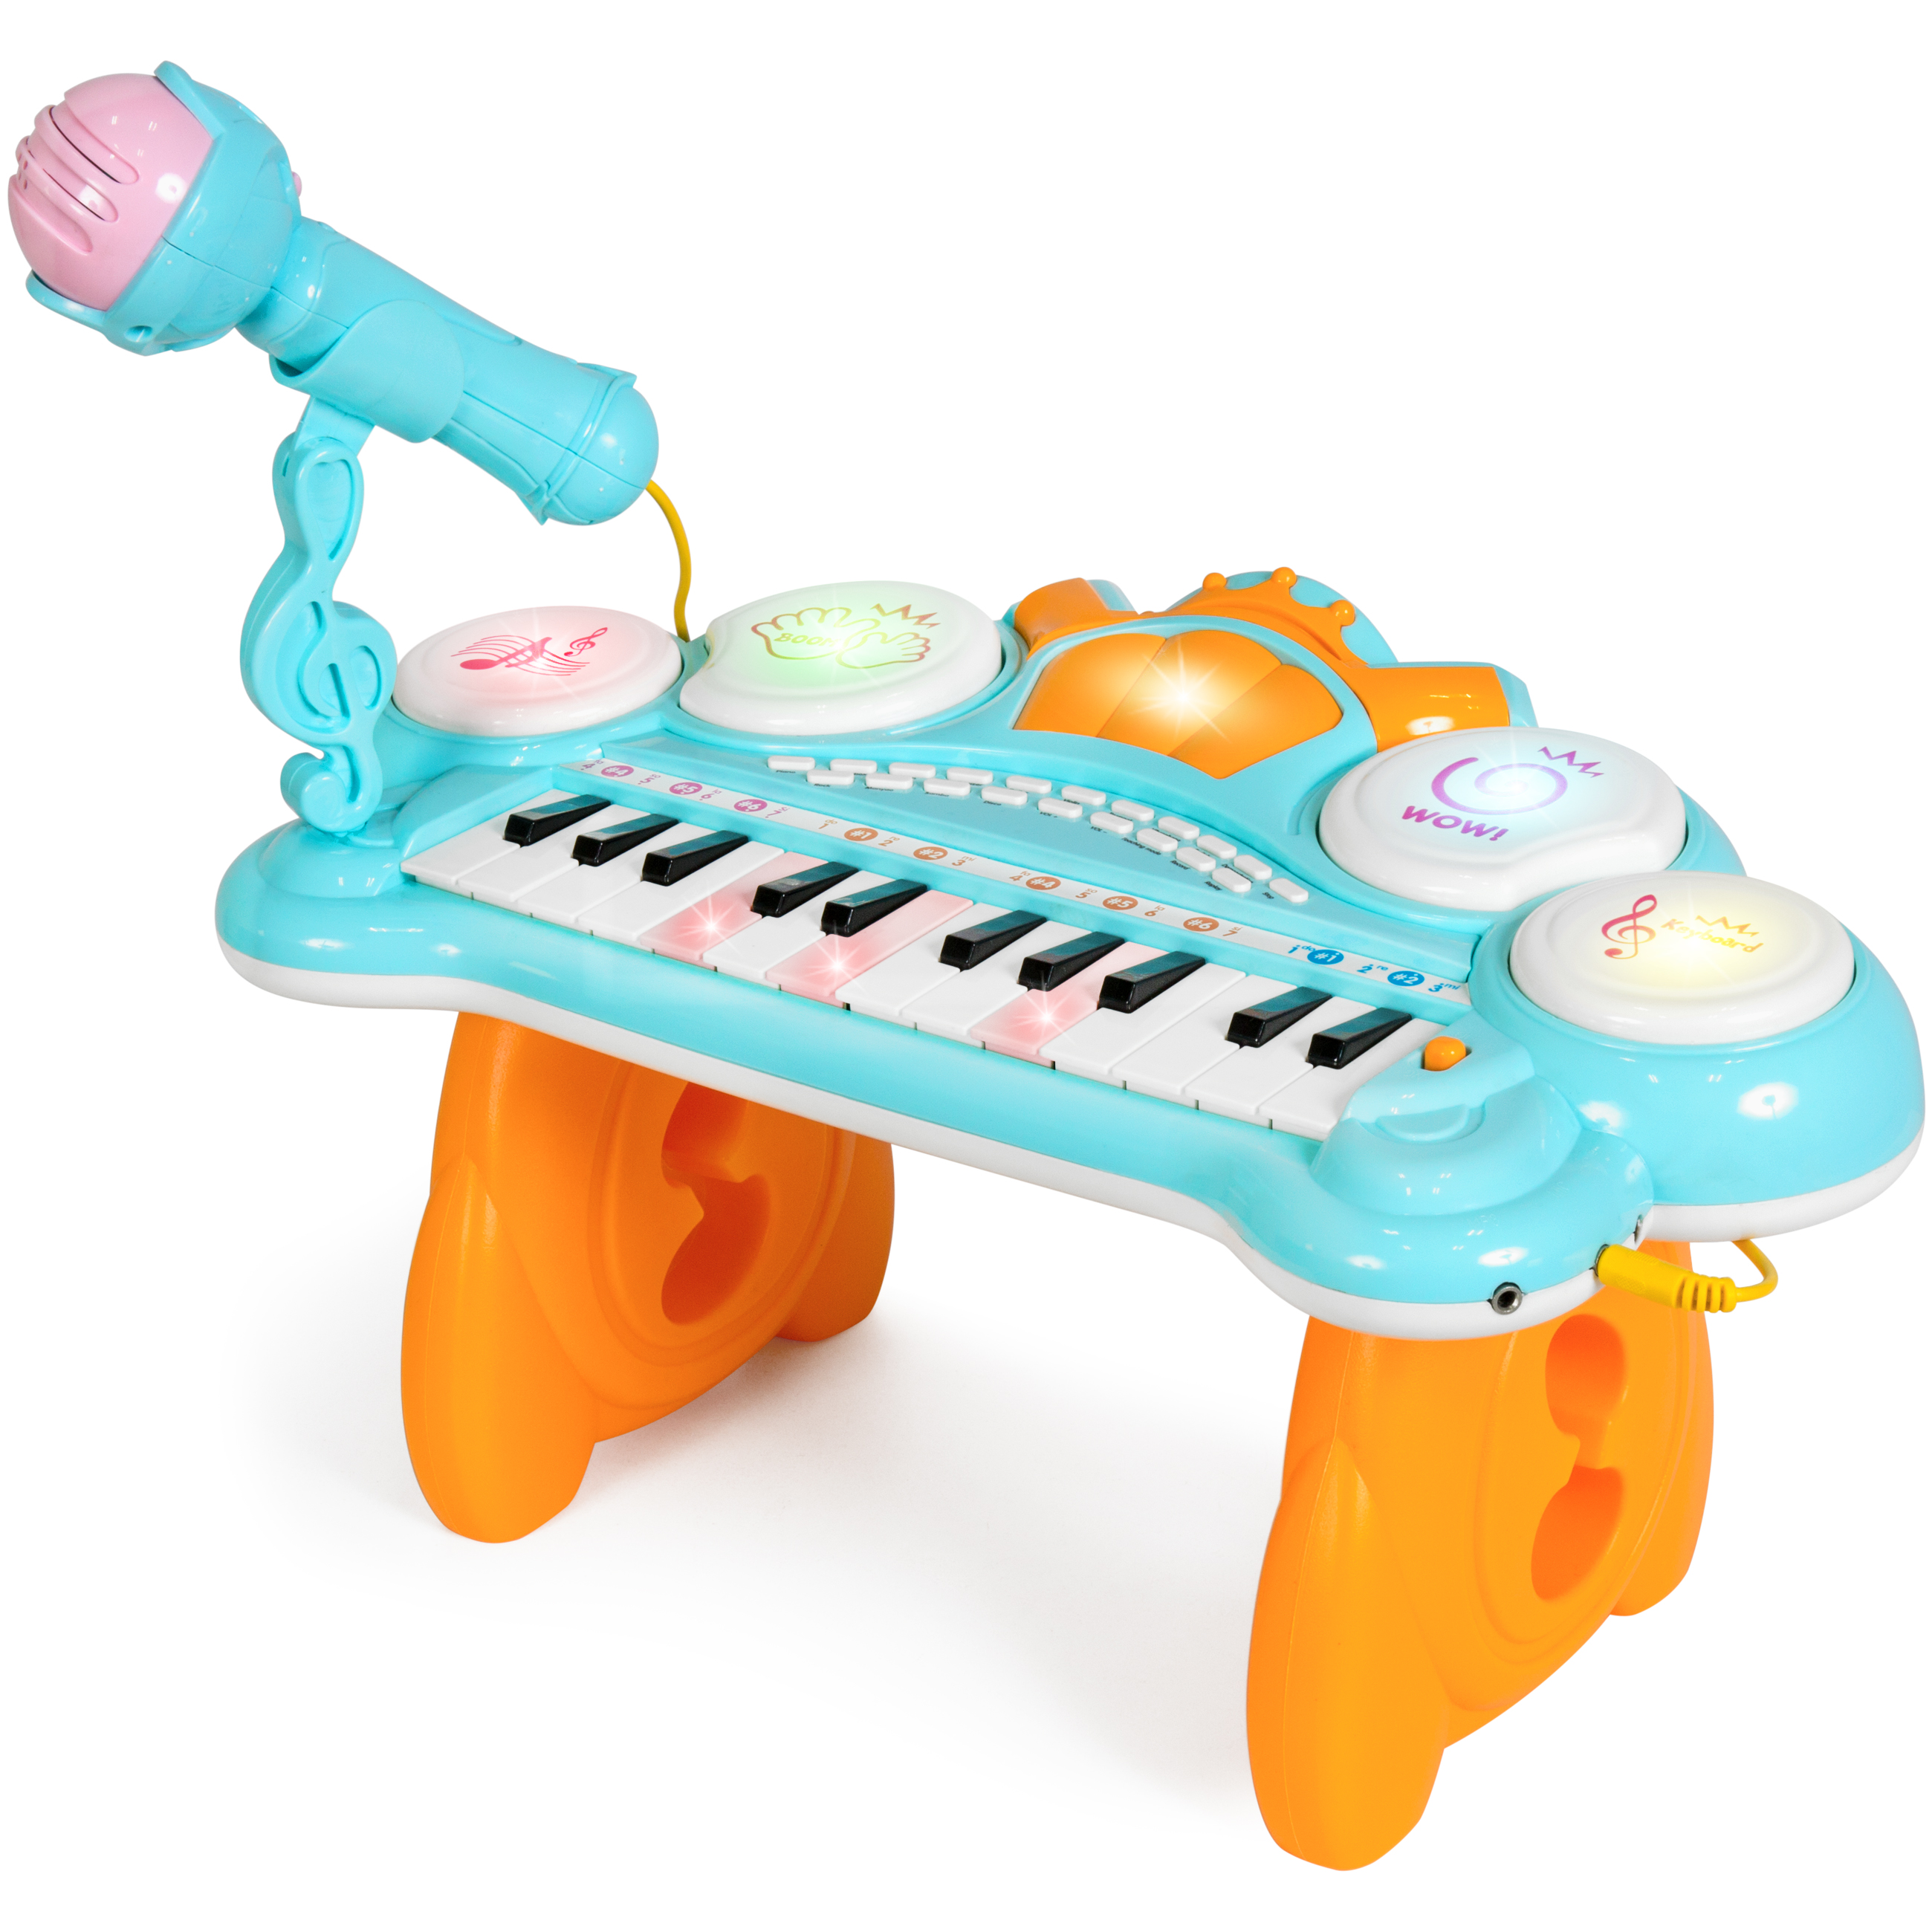 Best Choice Products 24-Key Kids Toddler Learning Musical Electronic Keyboard w  Lights,... by Best Choice Products